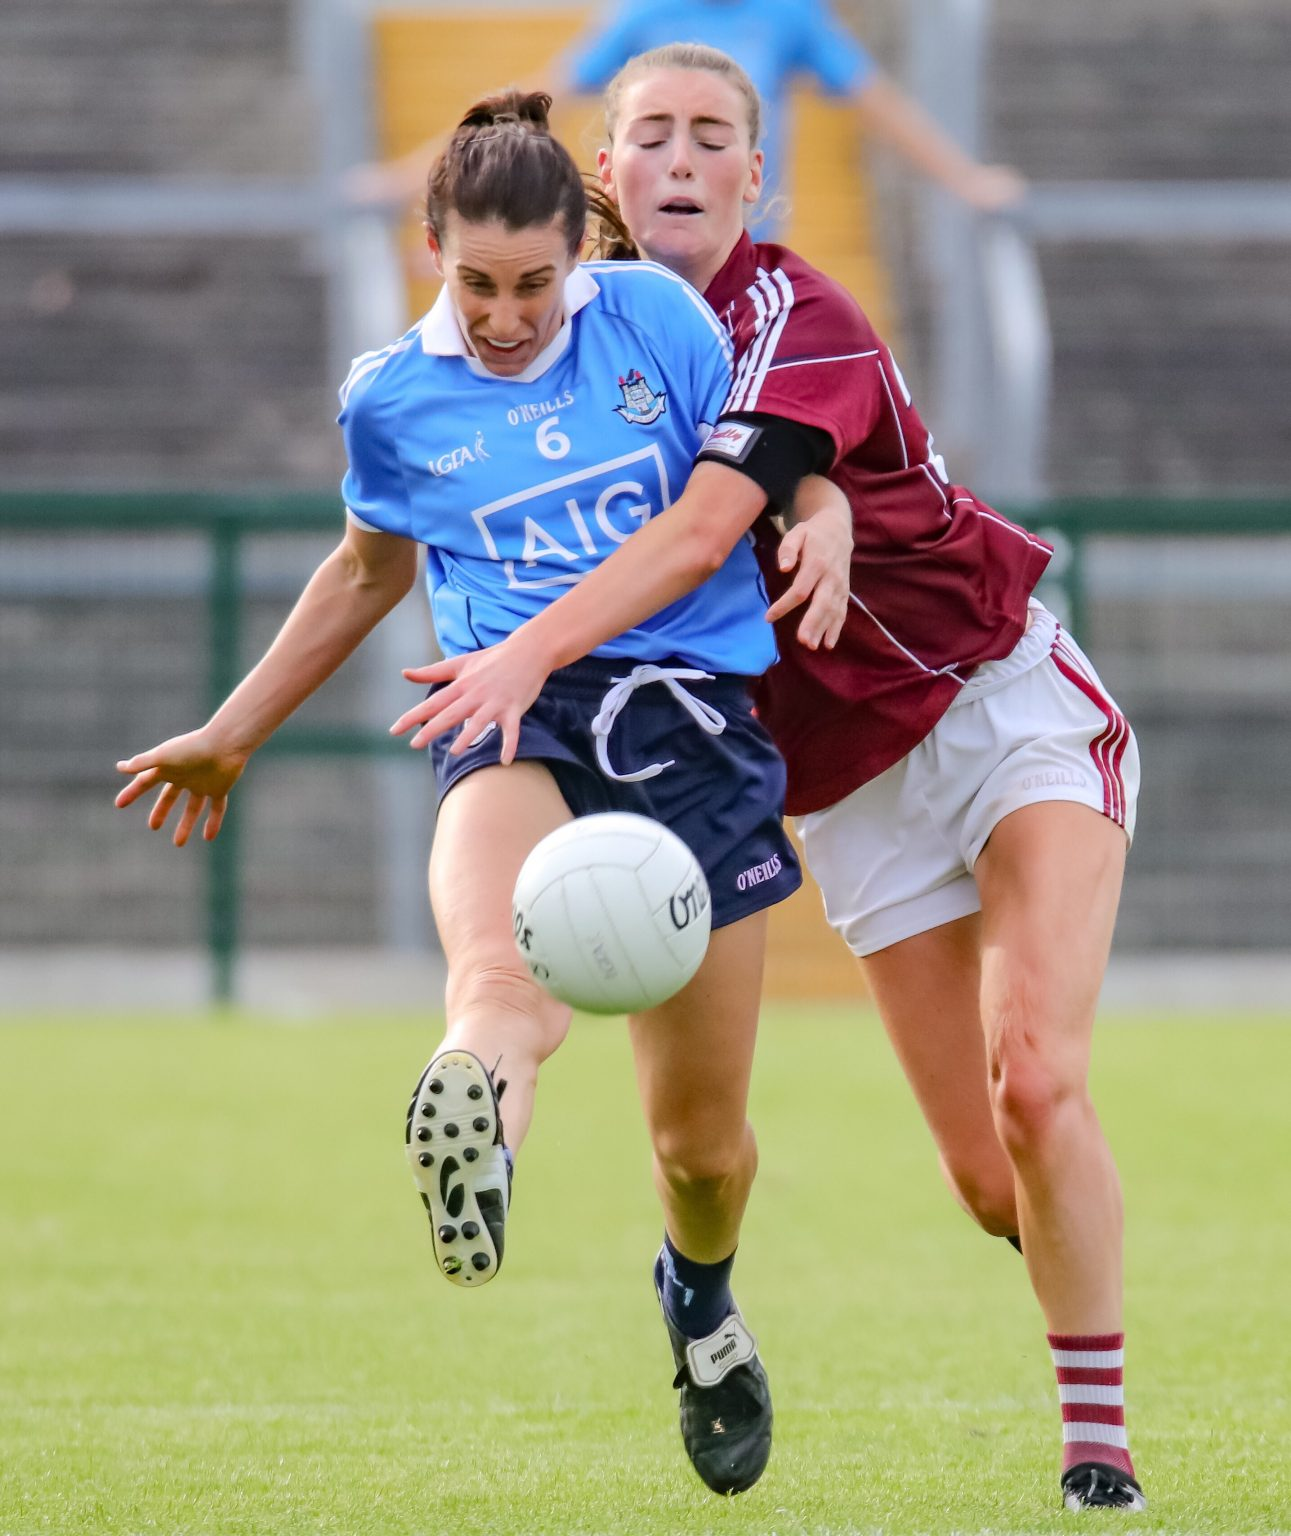 A dublin Ladies footballer in a sky blue jersey and navy shorts gets her kick away despite the attentions of a Galway player in a maroon jersey and white shorts